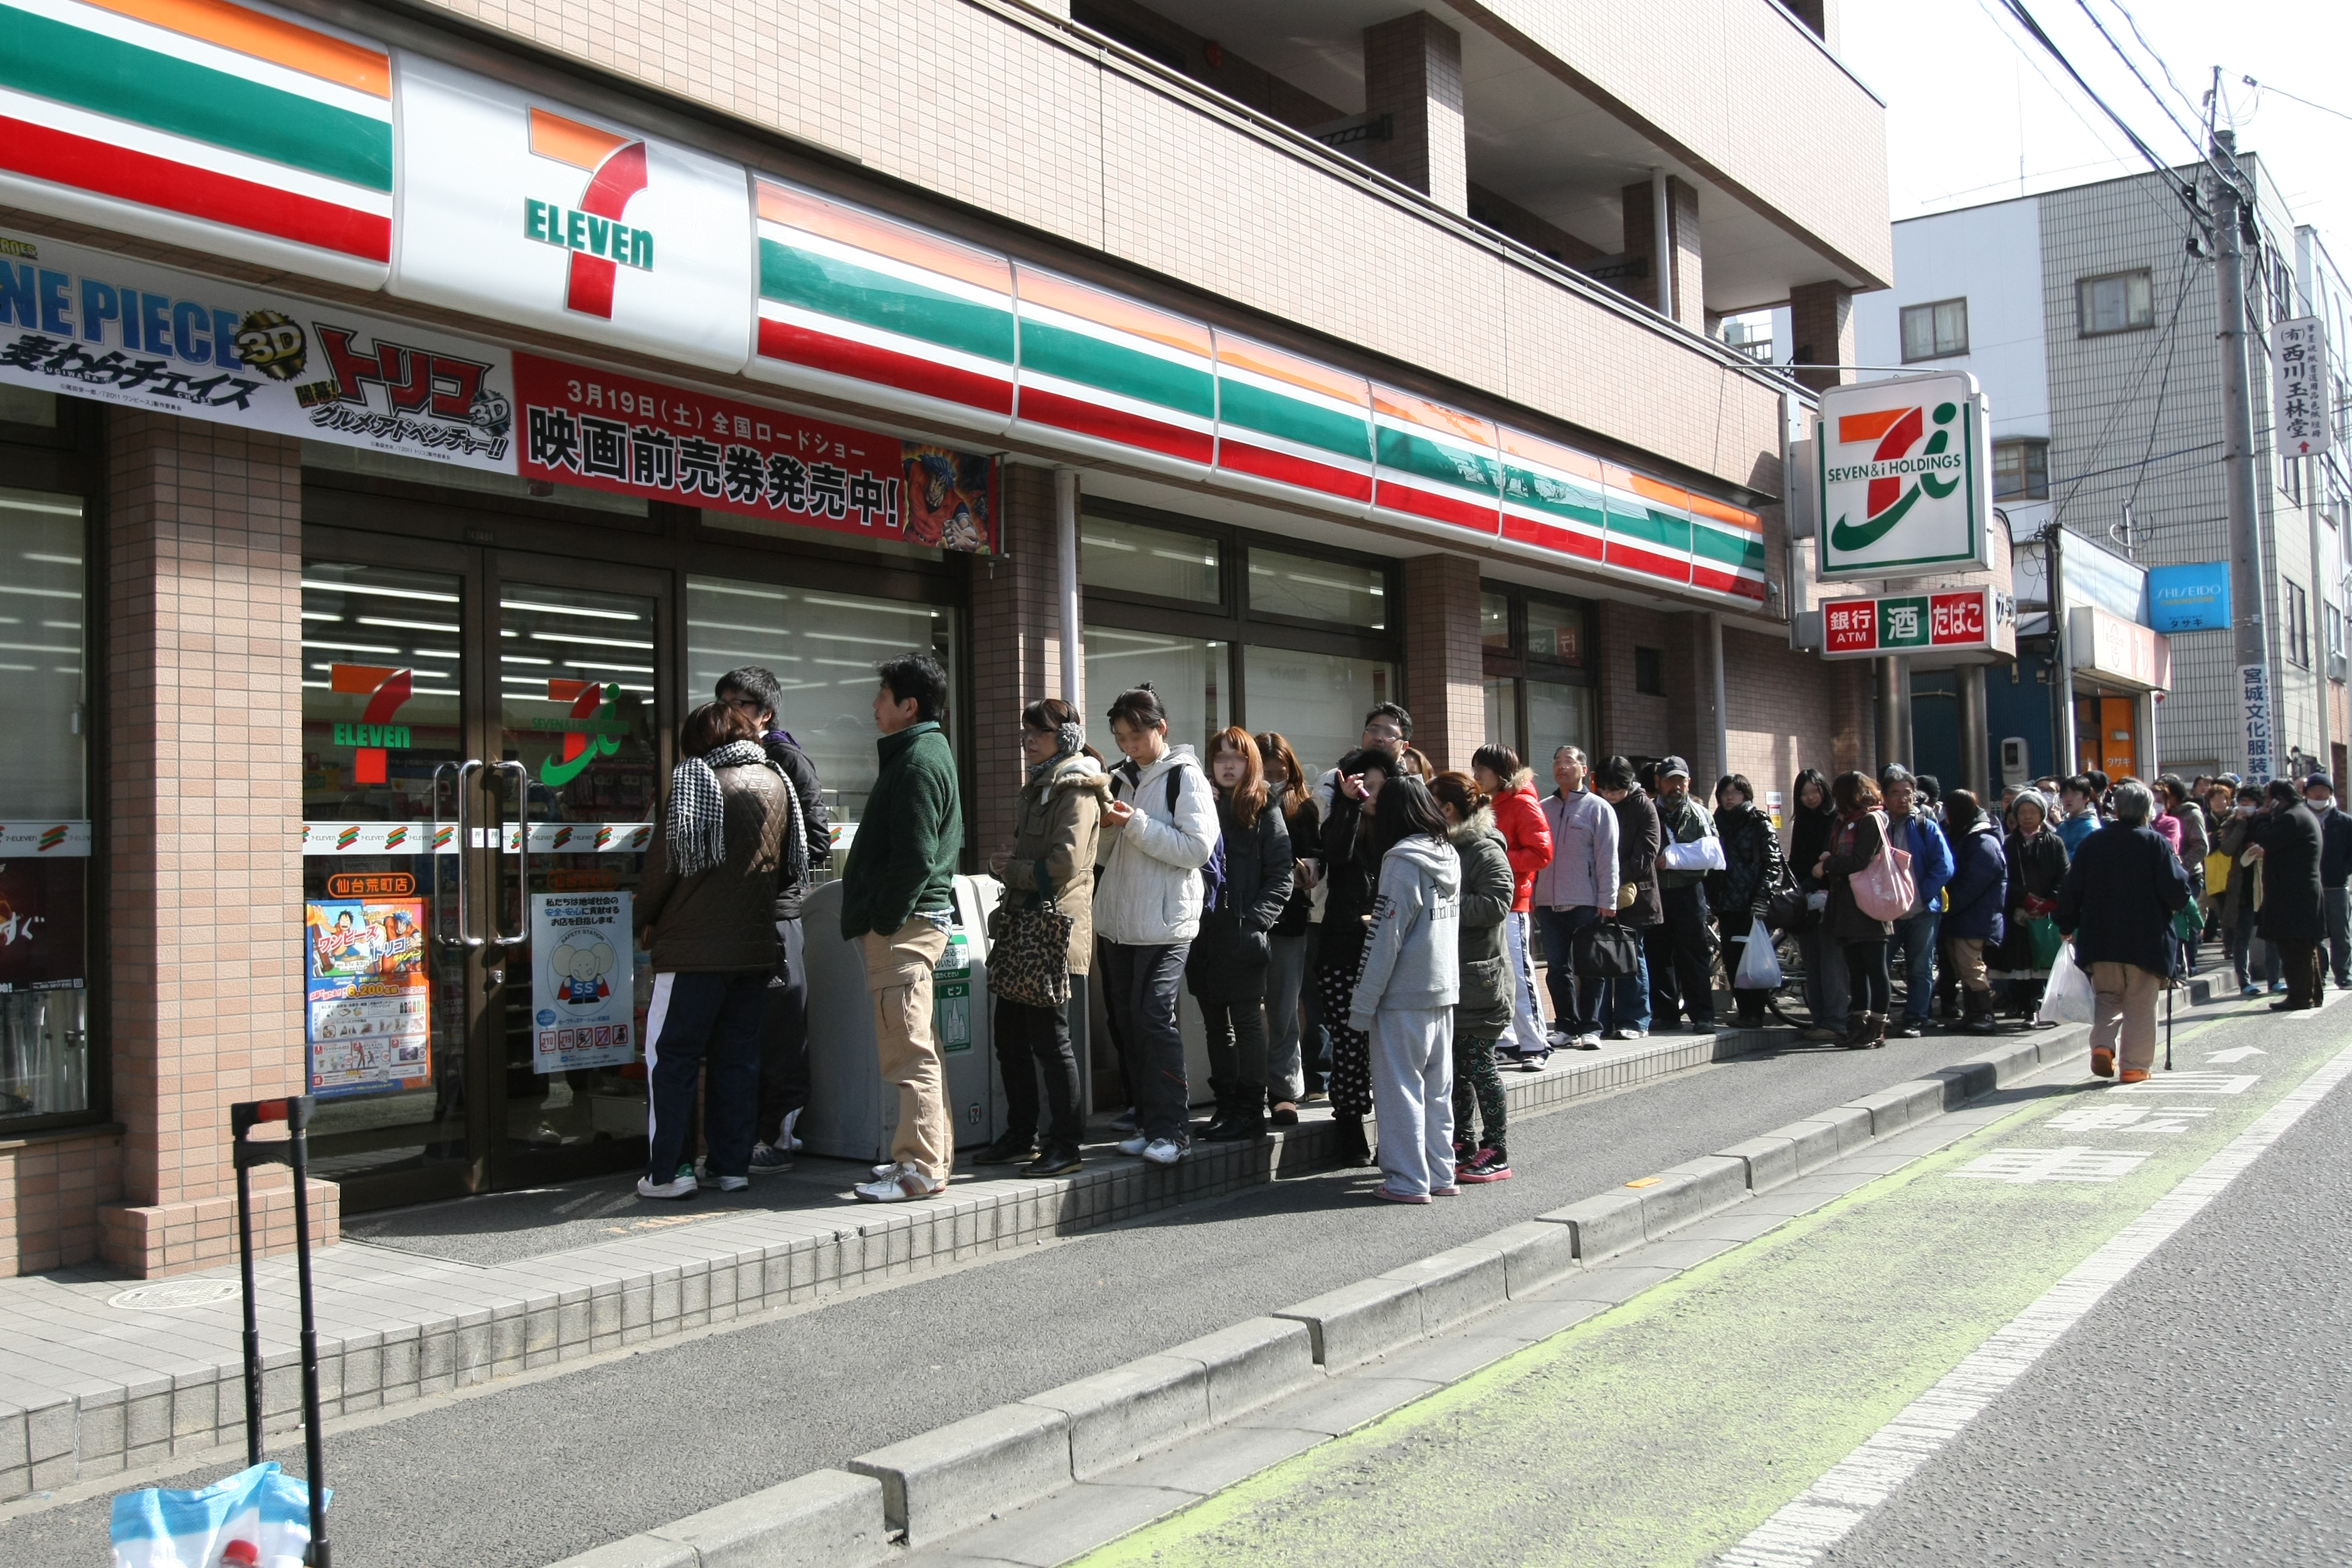 Japanese citizens queue up to receive basic food items after a earthquake.